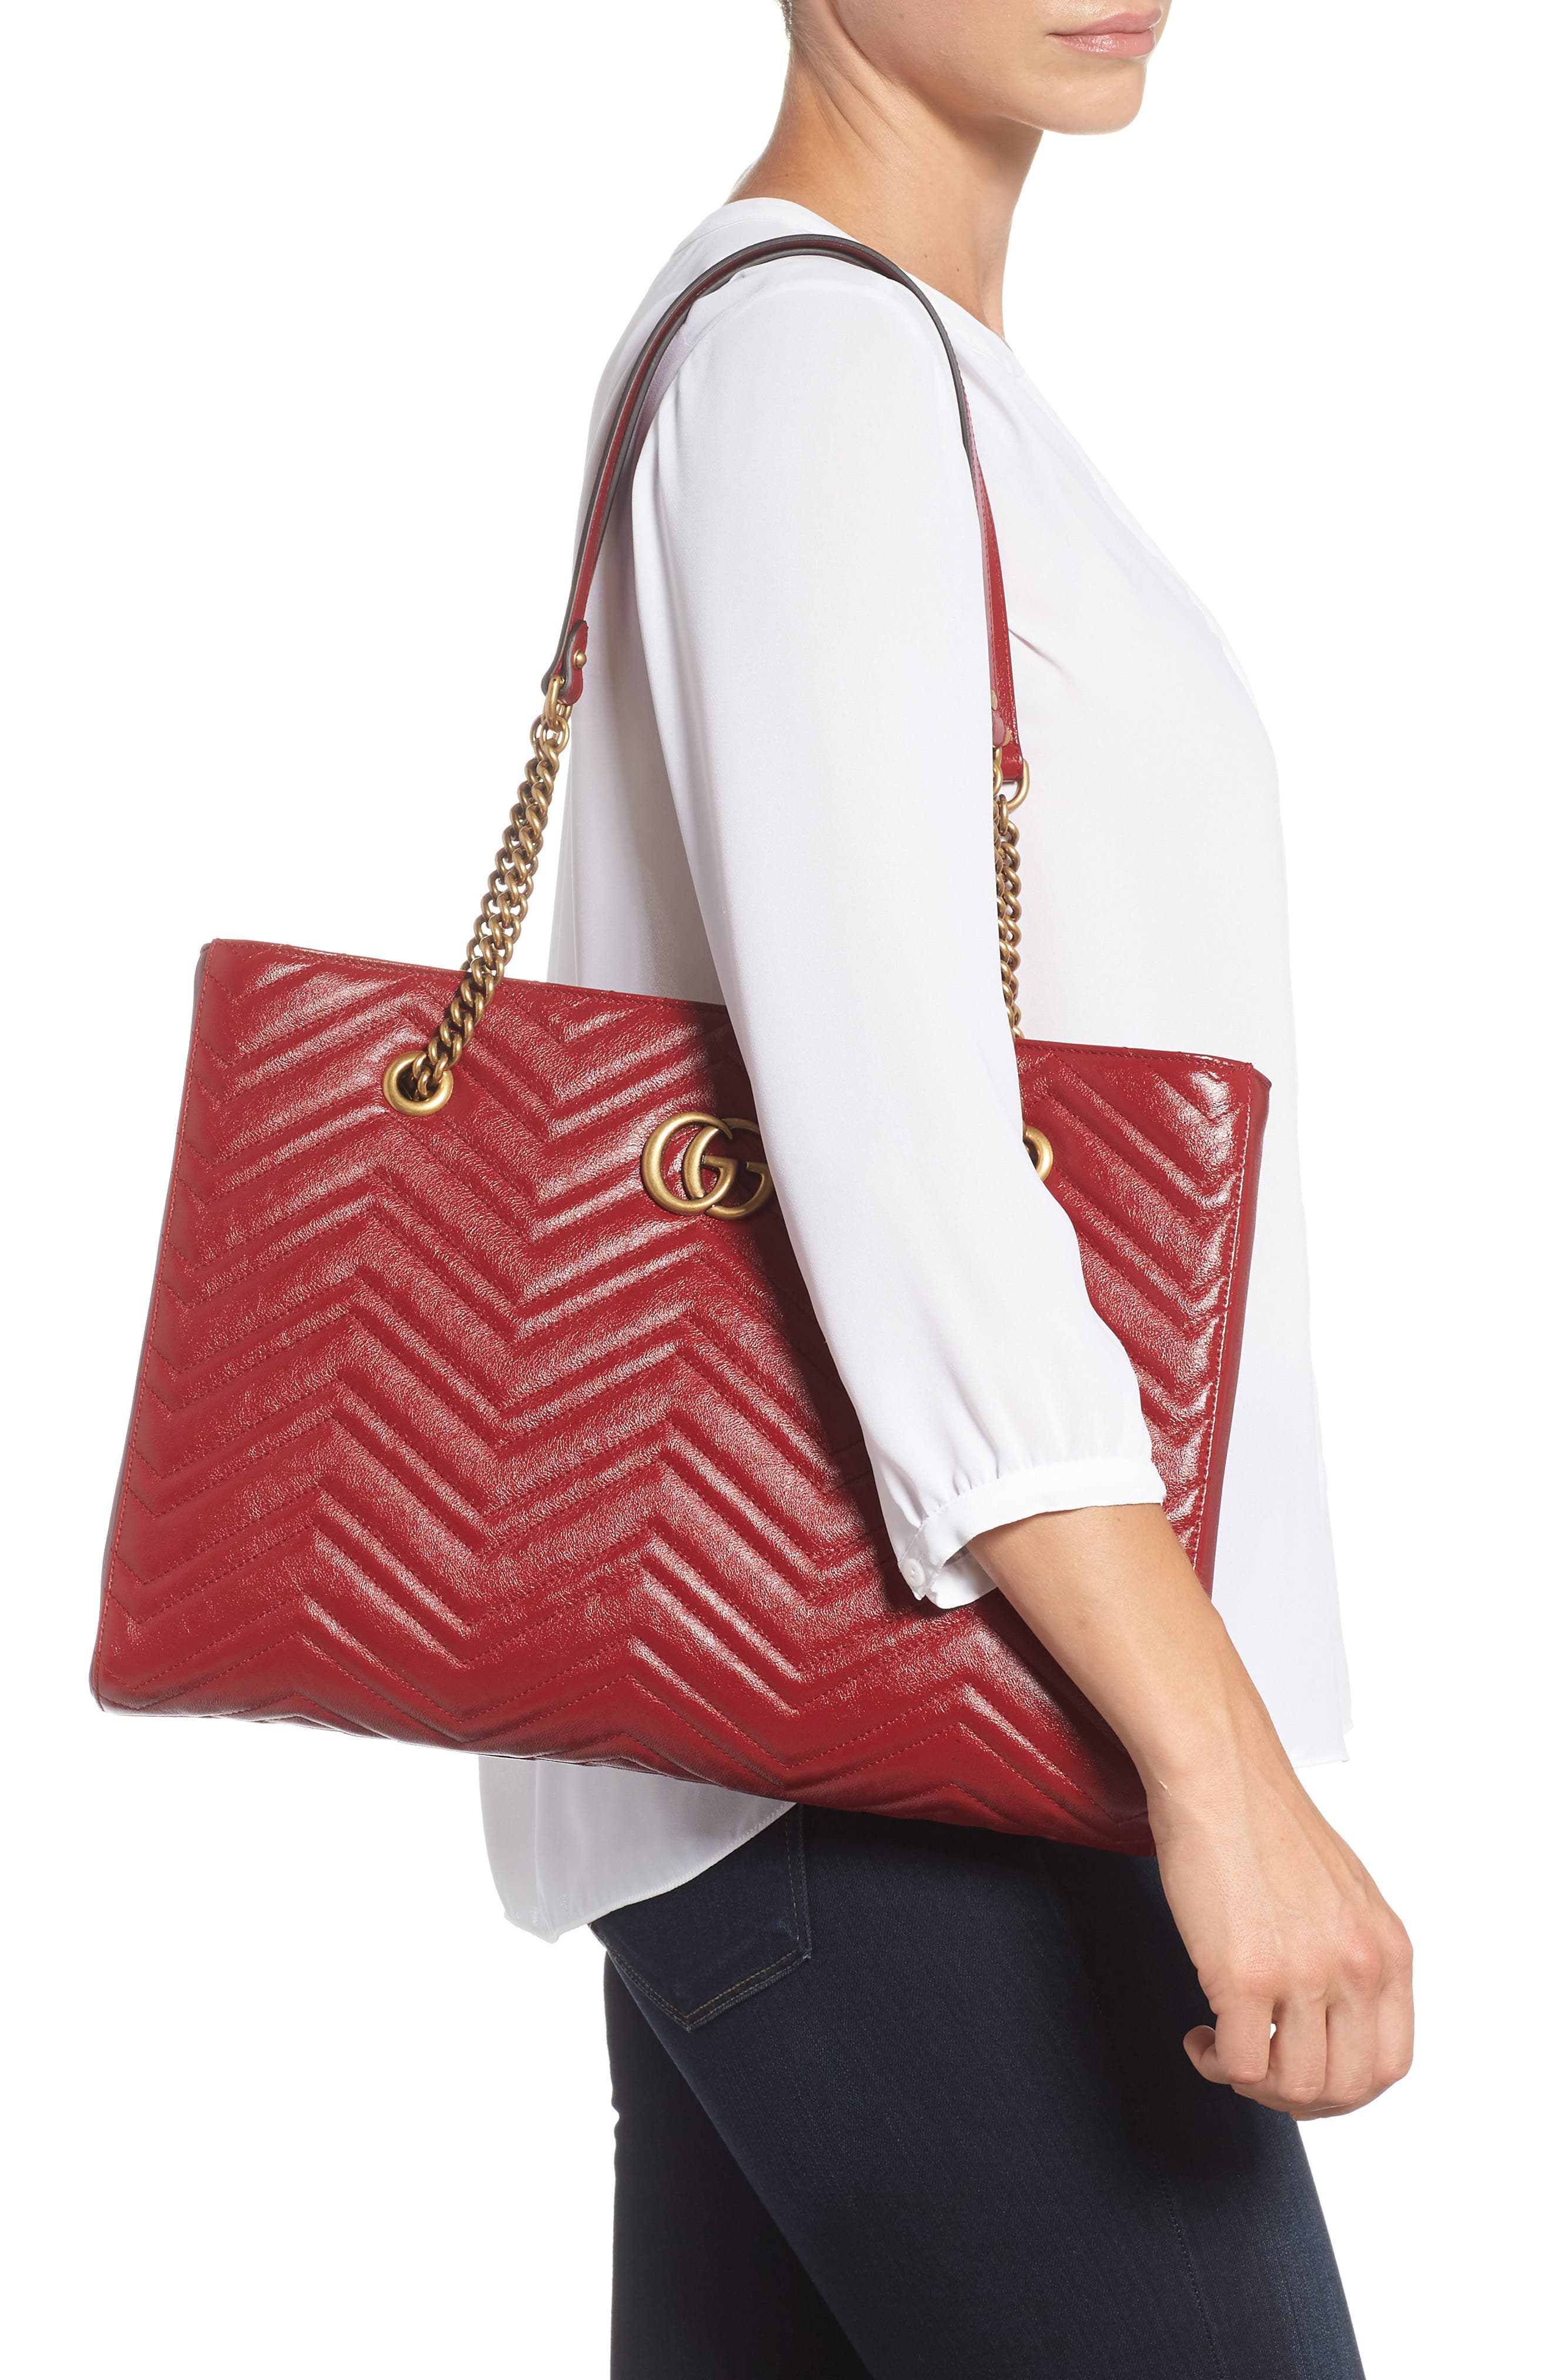 GG Marmont 2.0 Matelassé Medium Leather East/West Tote Bag,                             Alternate thumbnail 2, color,                             CERISE/ CERISE